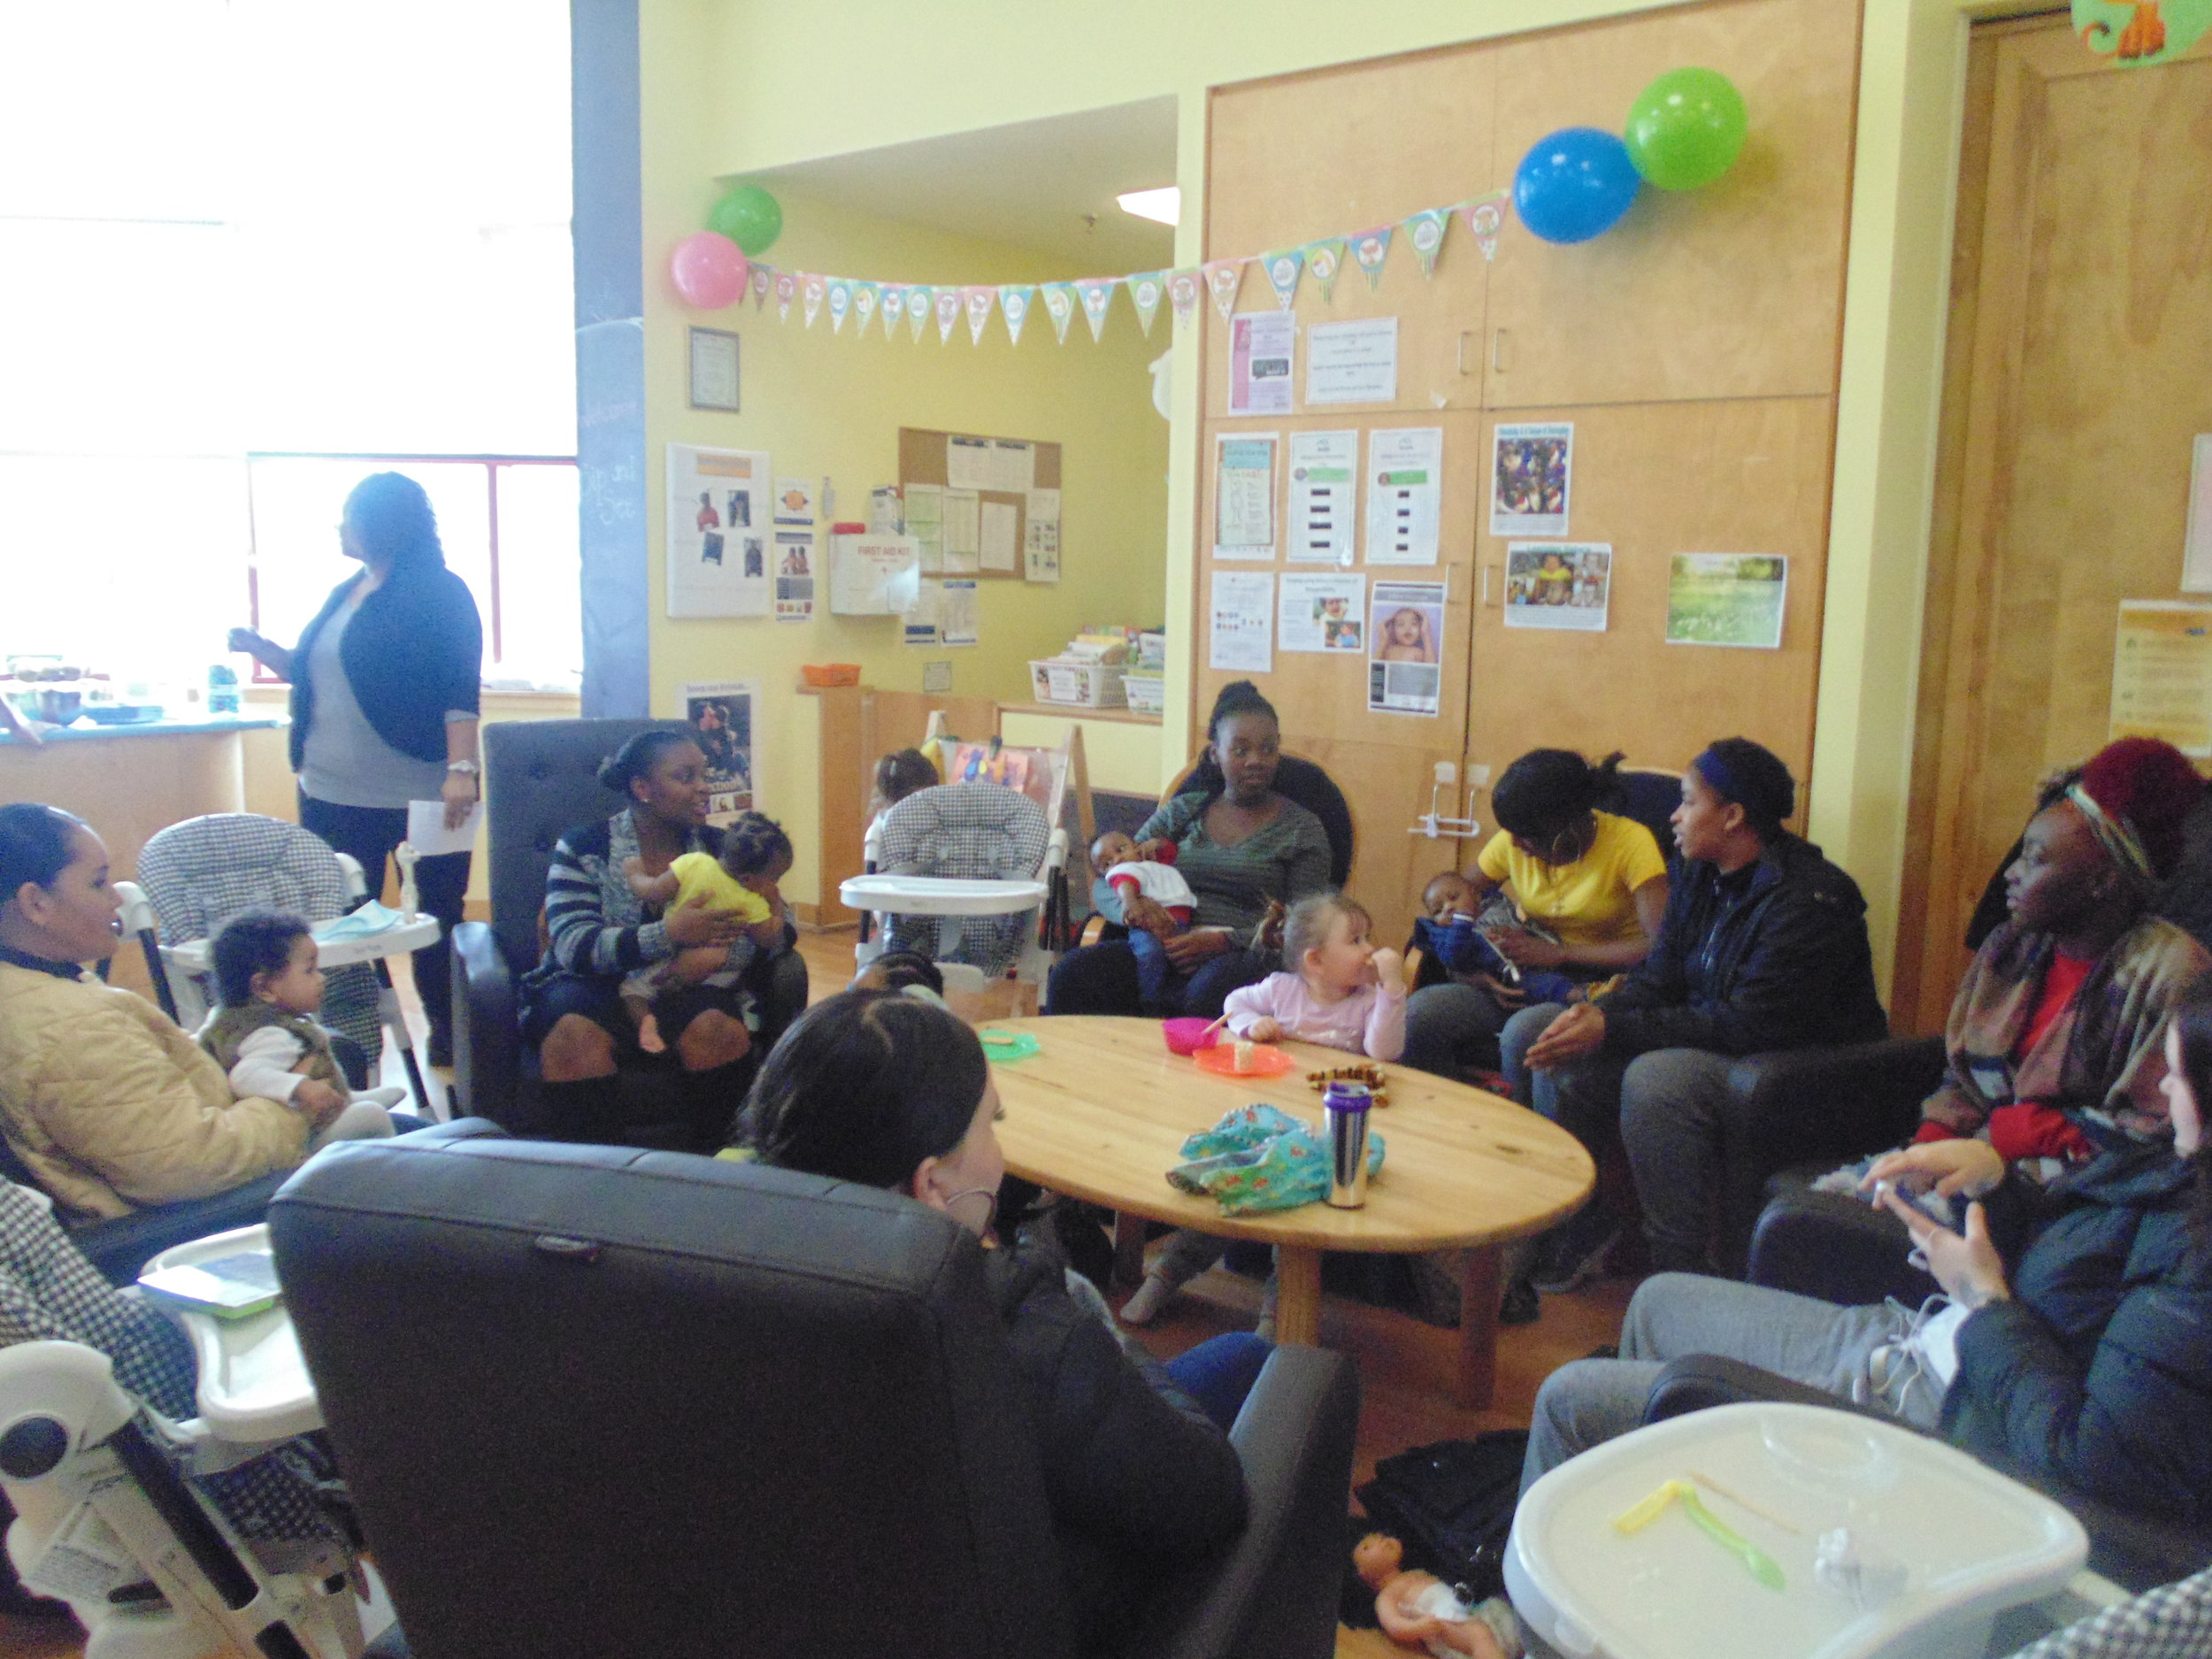 Jessie's Centre - The Centre was established by June Callwood to offer comprehensive services to pregnant teens and young mothers and their children facing enormous obstacles such as poverty and social isolation with programs available to provide help.www.jessiescentre.org